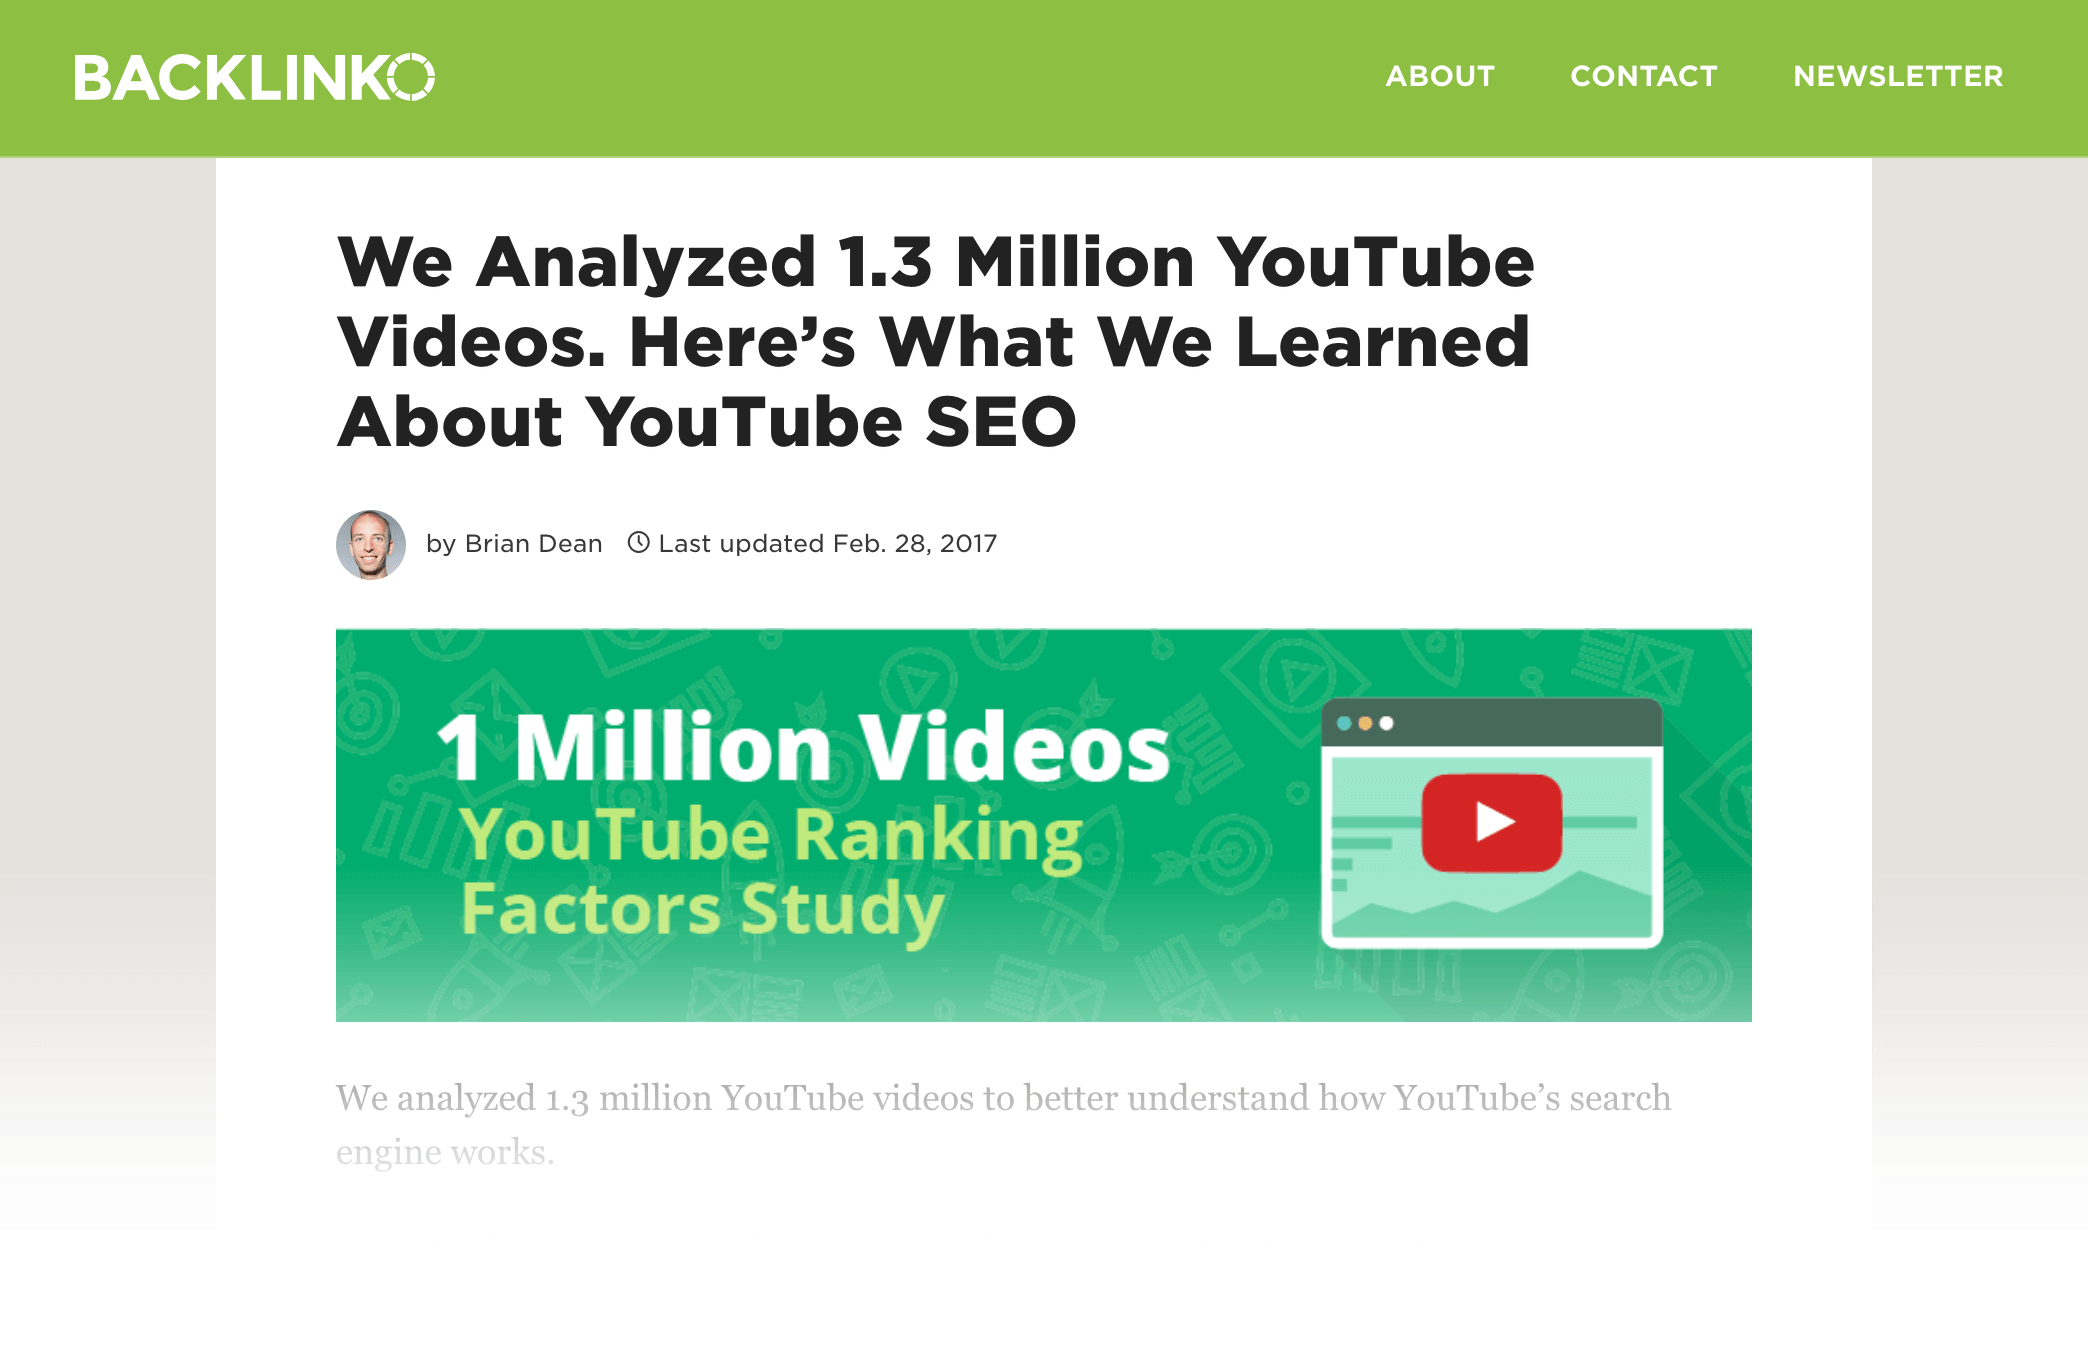 YouTube Ranking Factors study